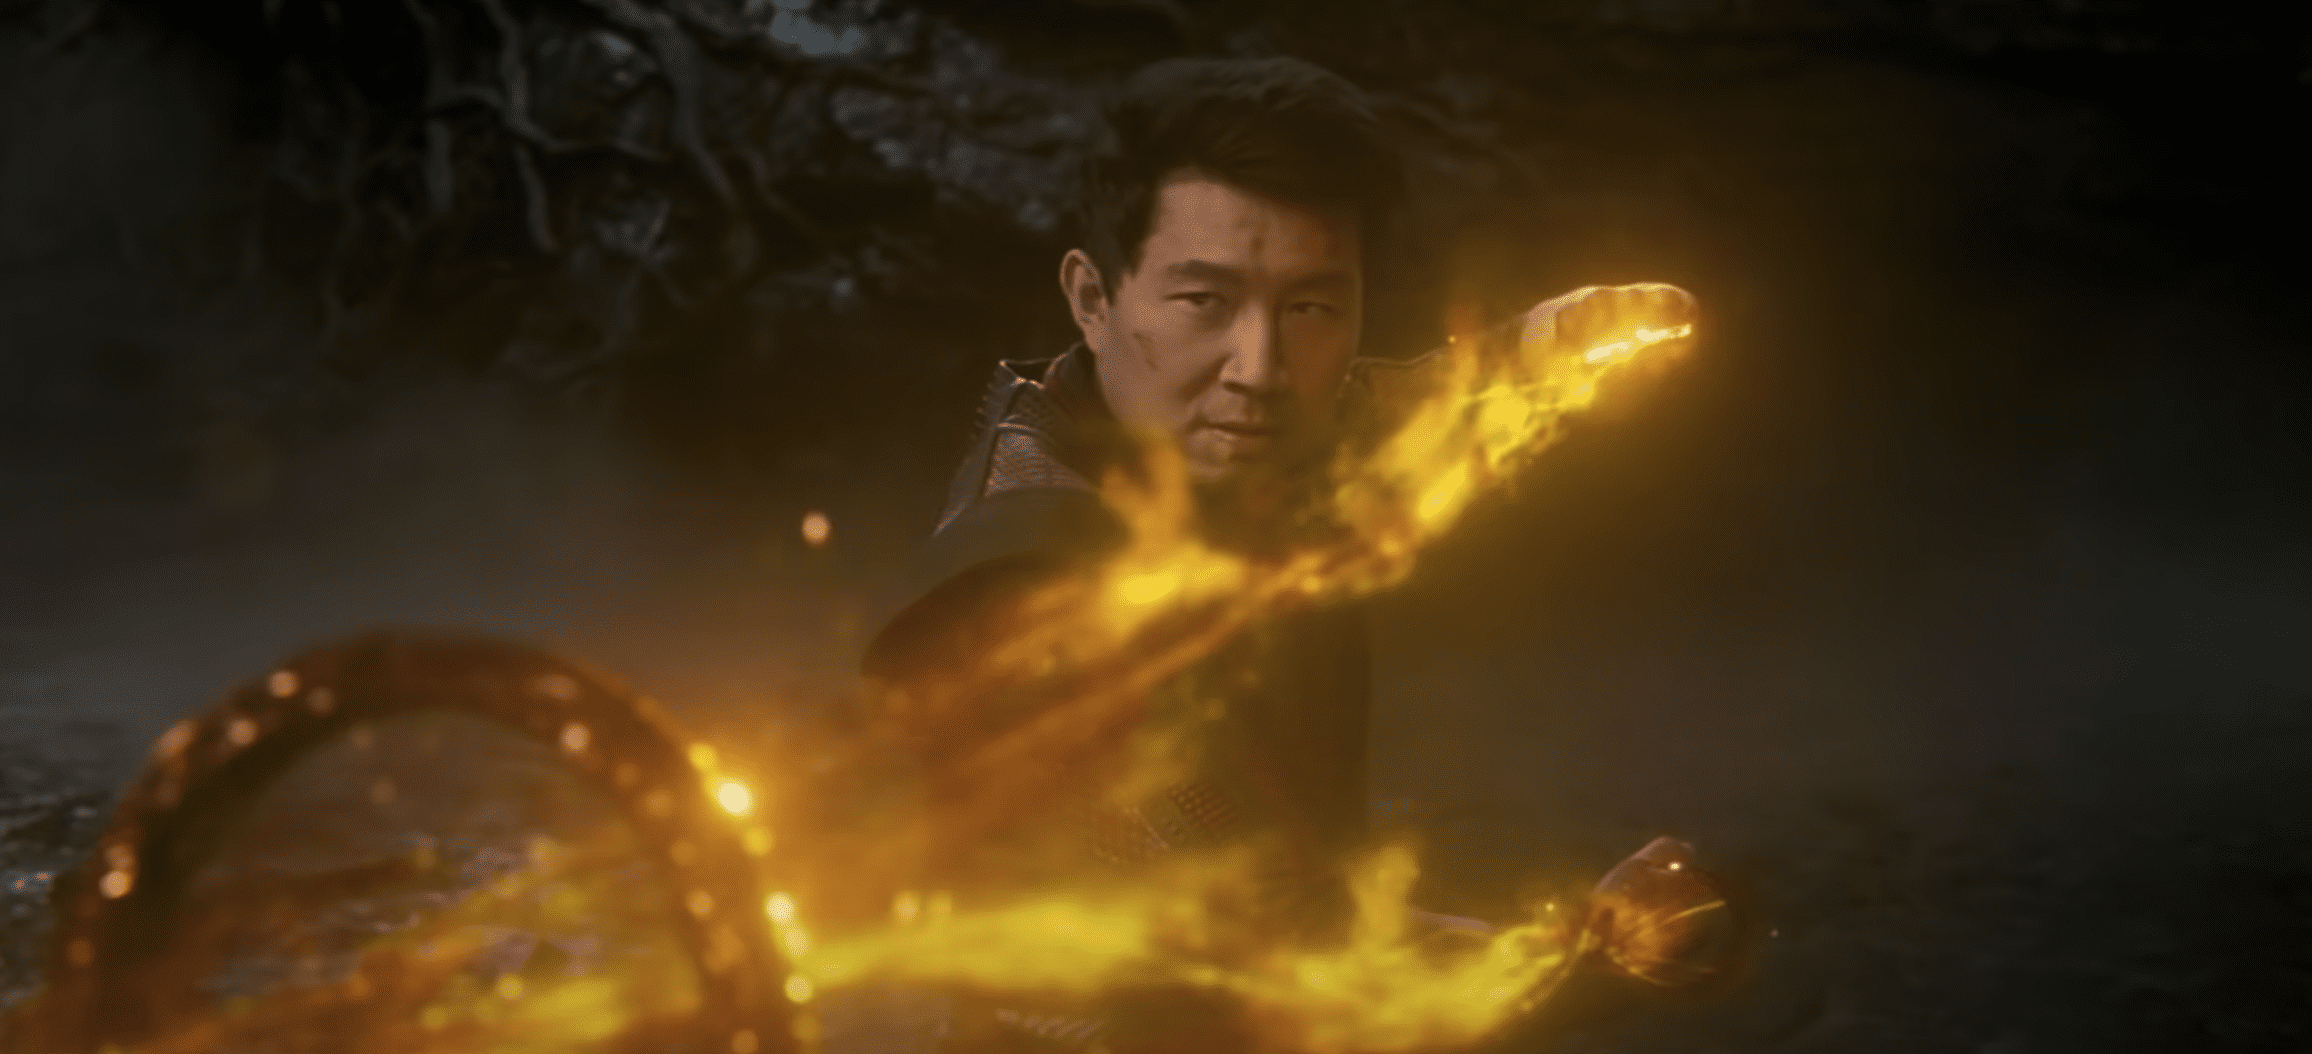 comicyears.com: Shang-Chi Spoiler Free Review: Marvel's First Asian-Led Superhero Movie Is A Celebration Of Representation And Asian American Identity